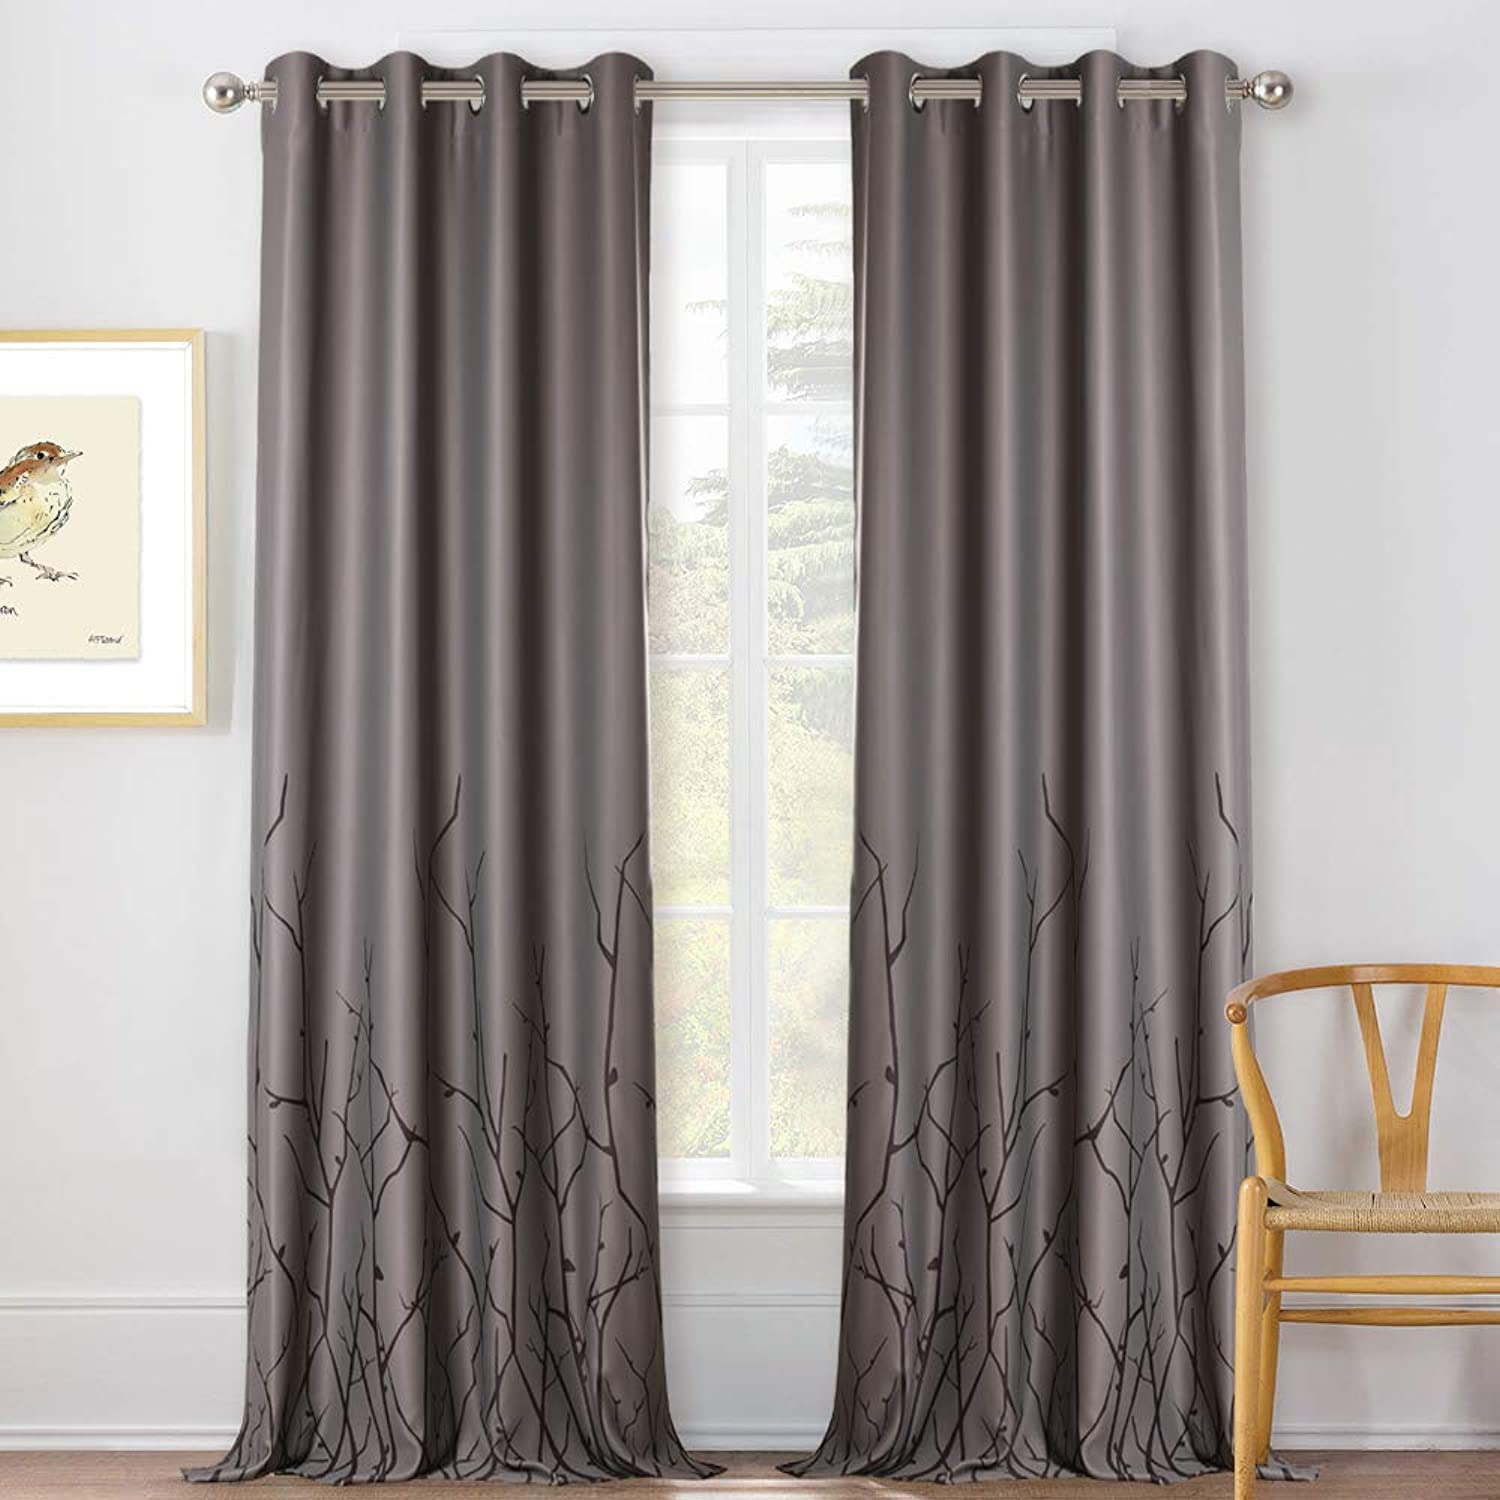 KGORGE 95-inch Natural Decoration Curtain - Thermal Insulated Blackout Blinds for Light Blocking Noise Reducing, Trendy Printed Window Draperies with Simple Winter Branch Pattern (Grey, Set of 2)